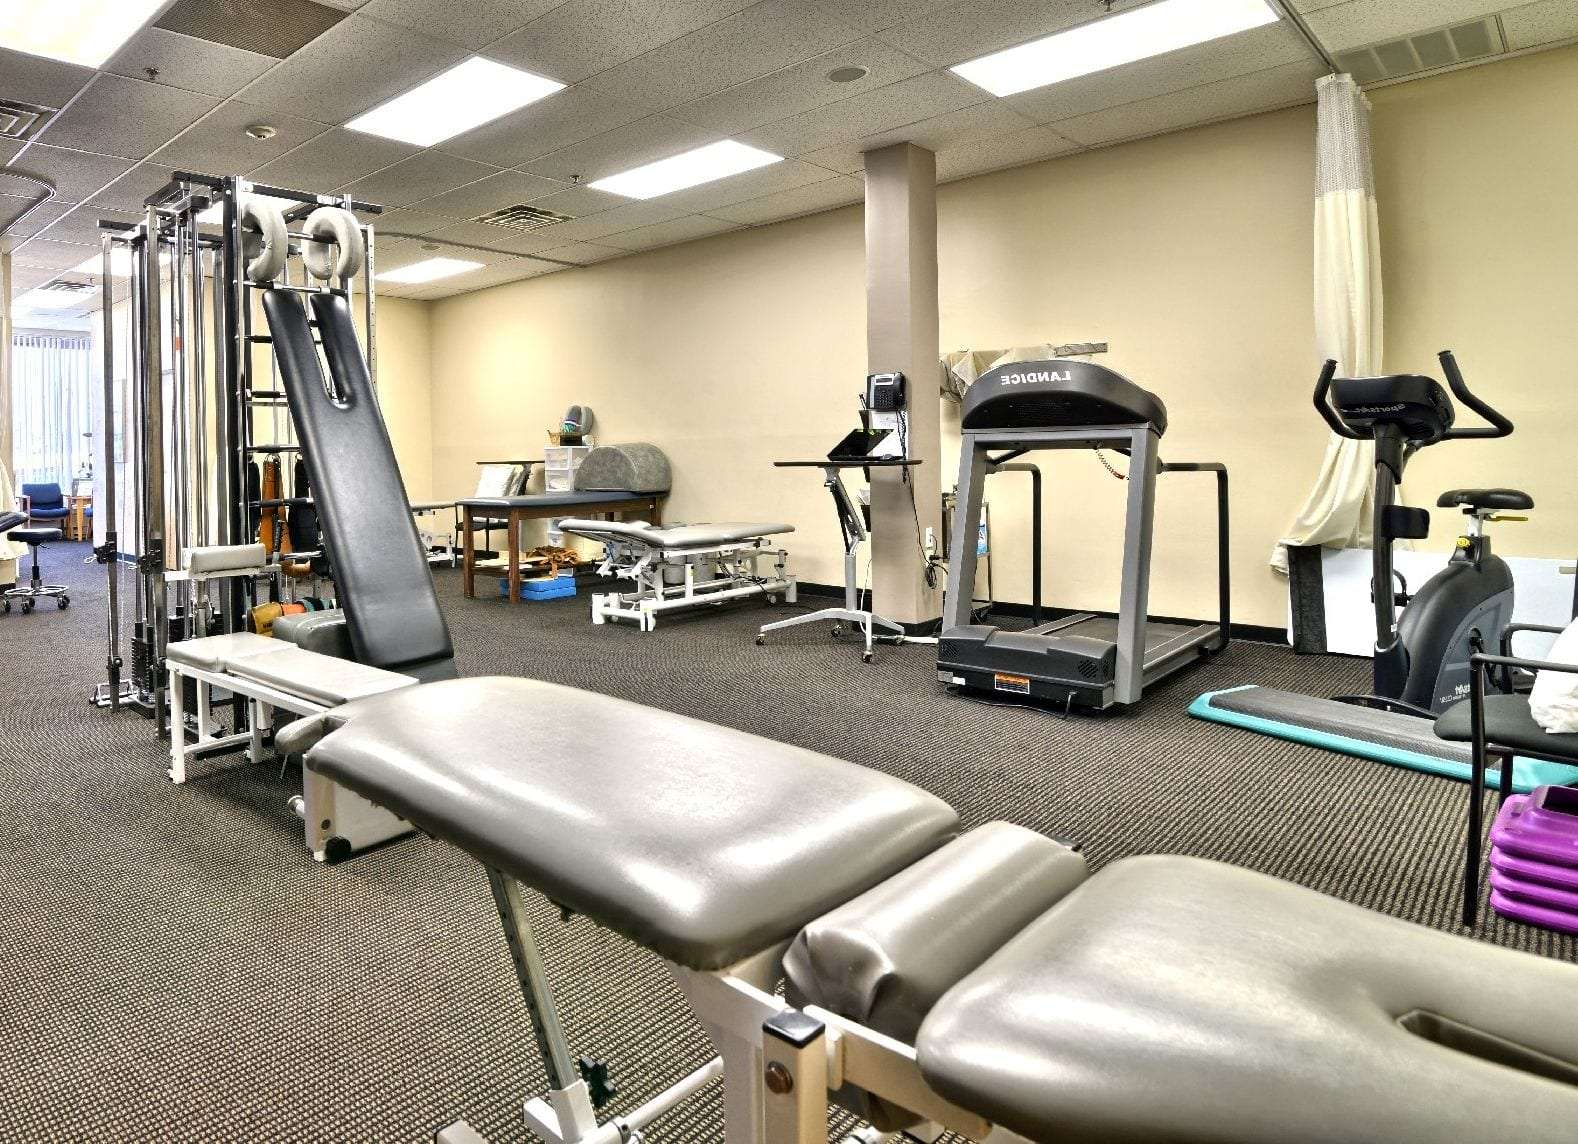 Here is a photo of a stretch bed and a treadmill at our physical therapy clinic in Haverhill, Massachusetts.